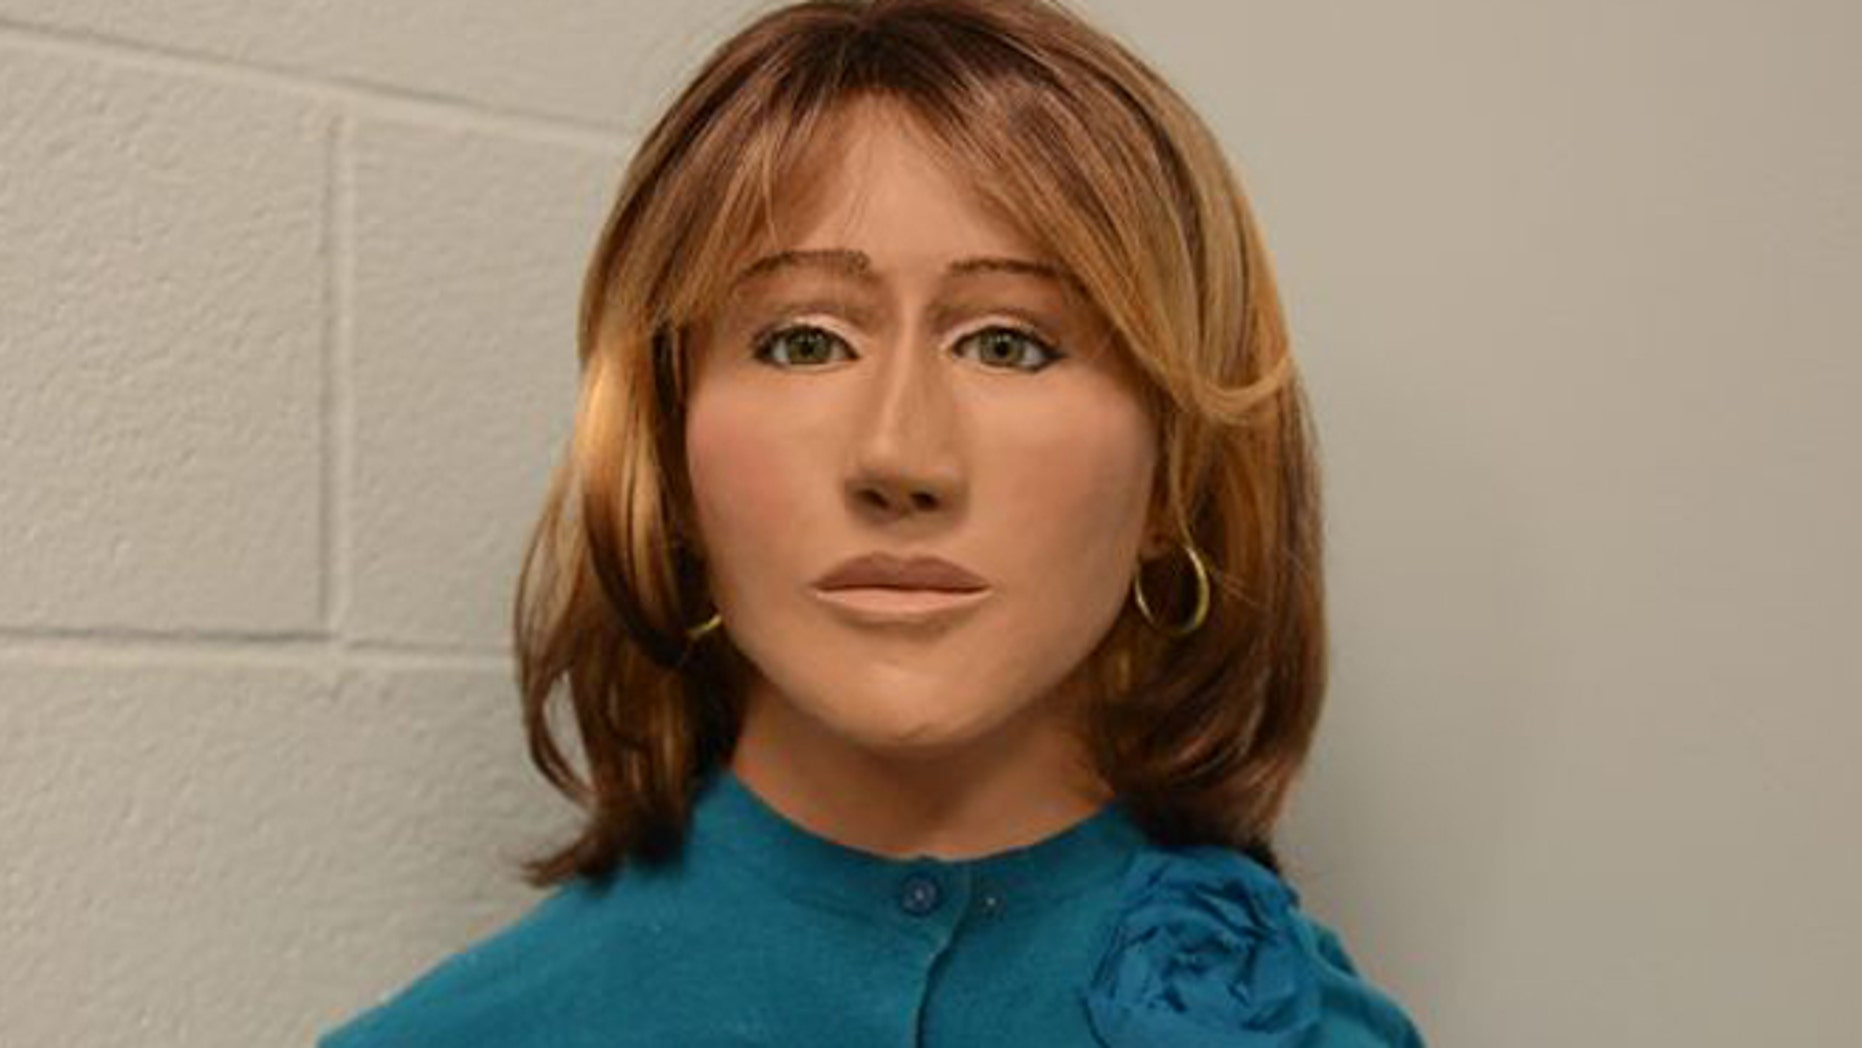 Police found the decaying remains of a dead woman in a secluded area in 1973. This is a reconstruction of how she may have looked.